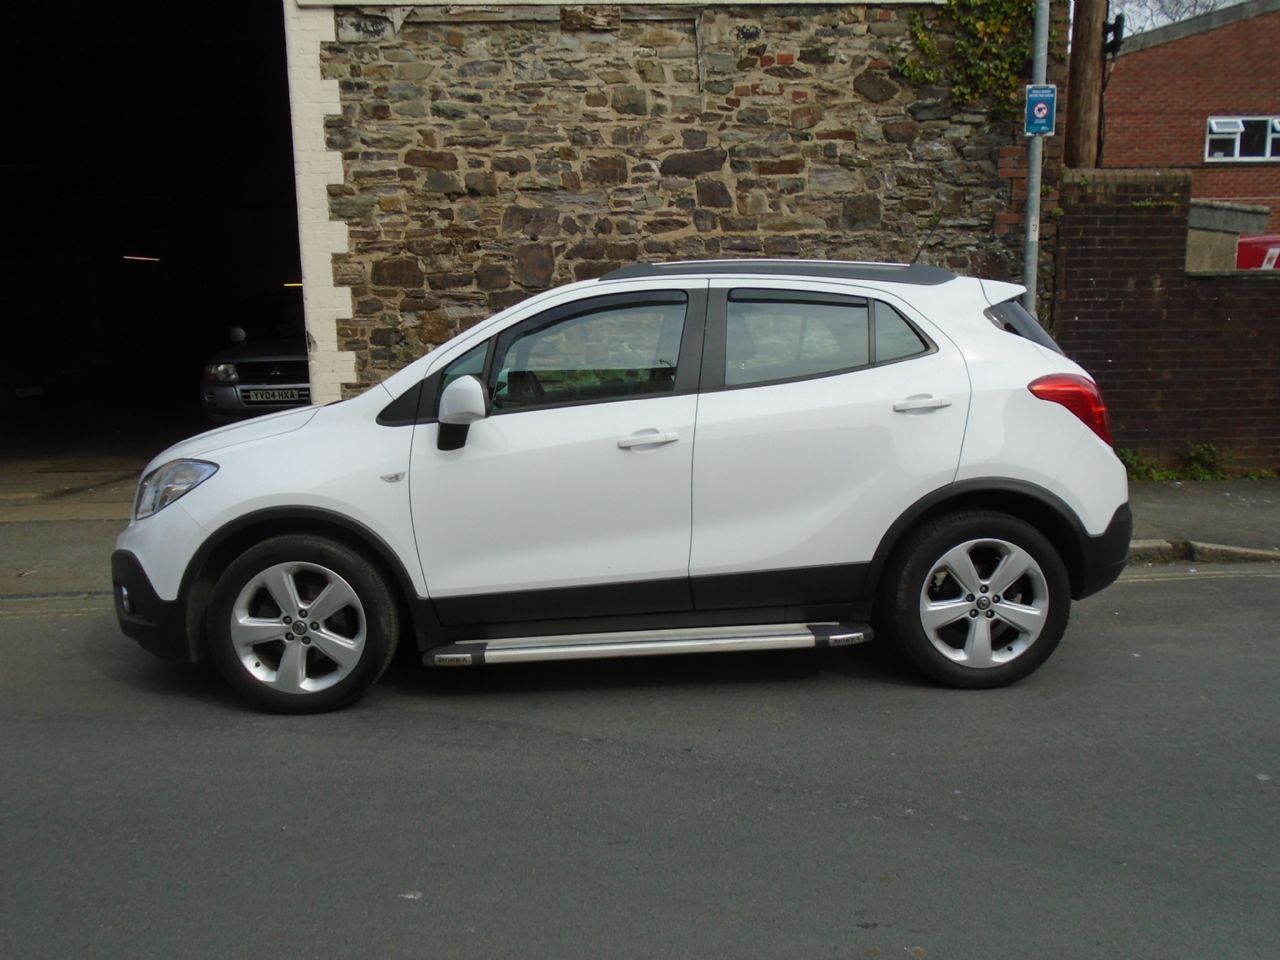 VAUXHALL Mokka Exclusiv 1.6 16v 115PS S/S 5-spd - Picture 2